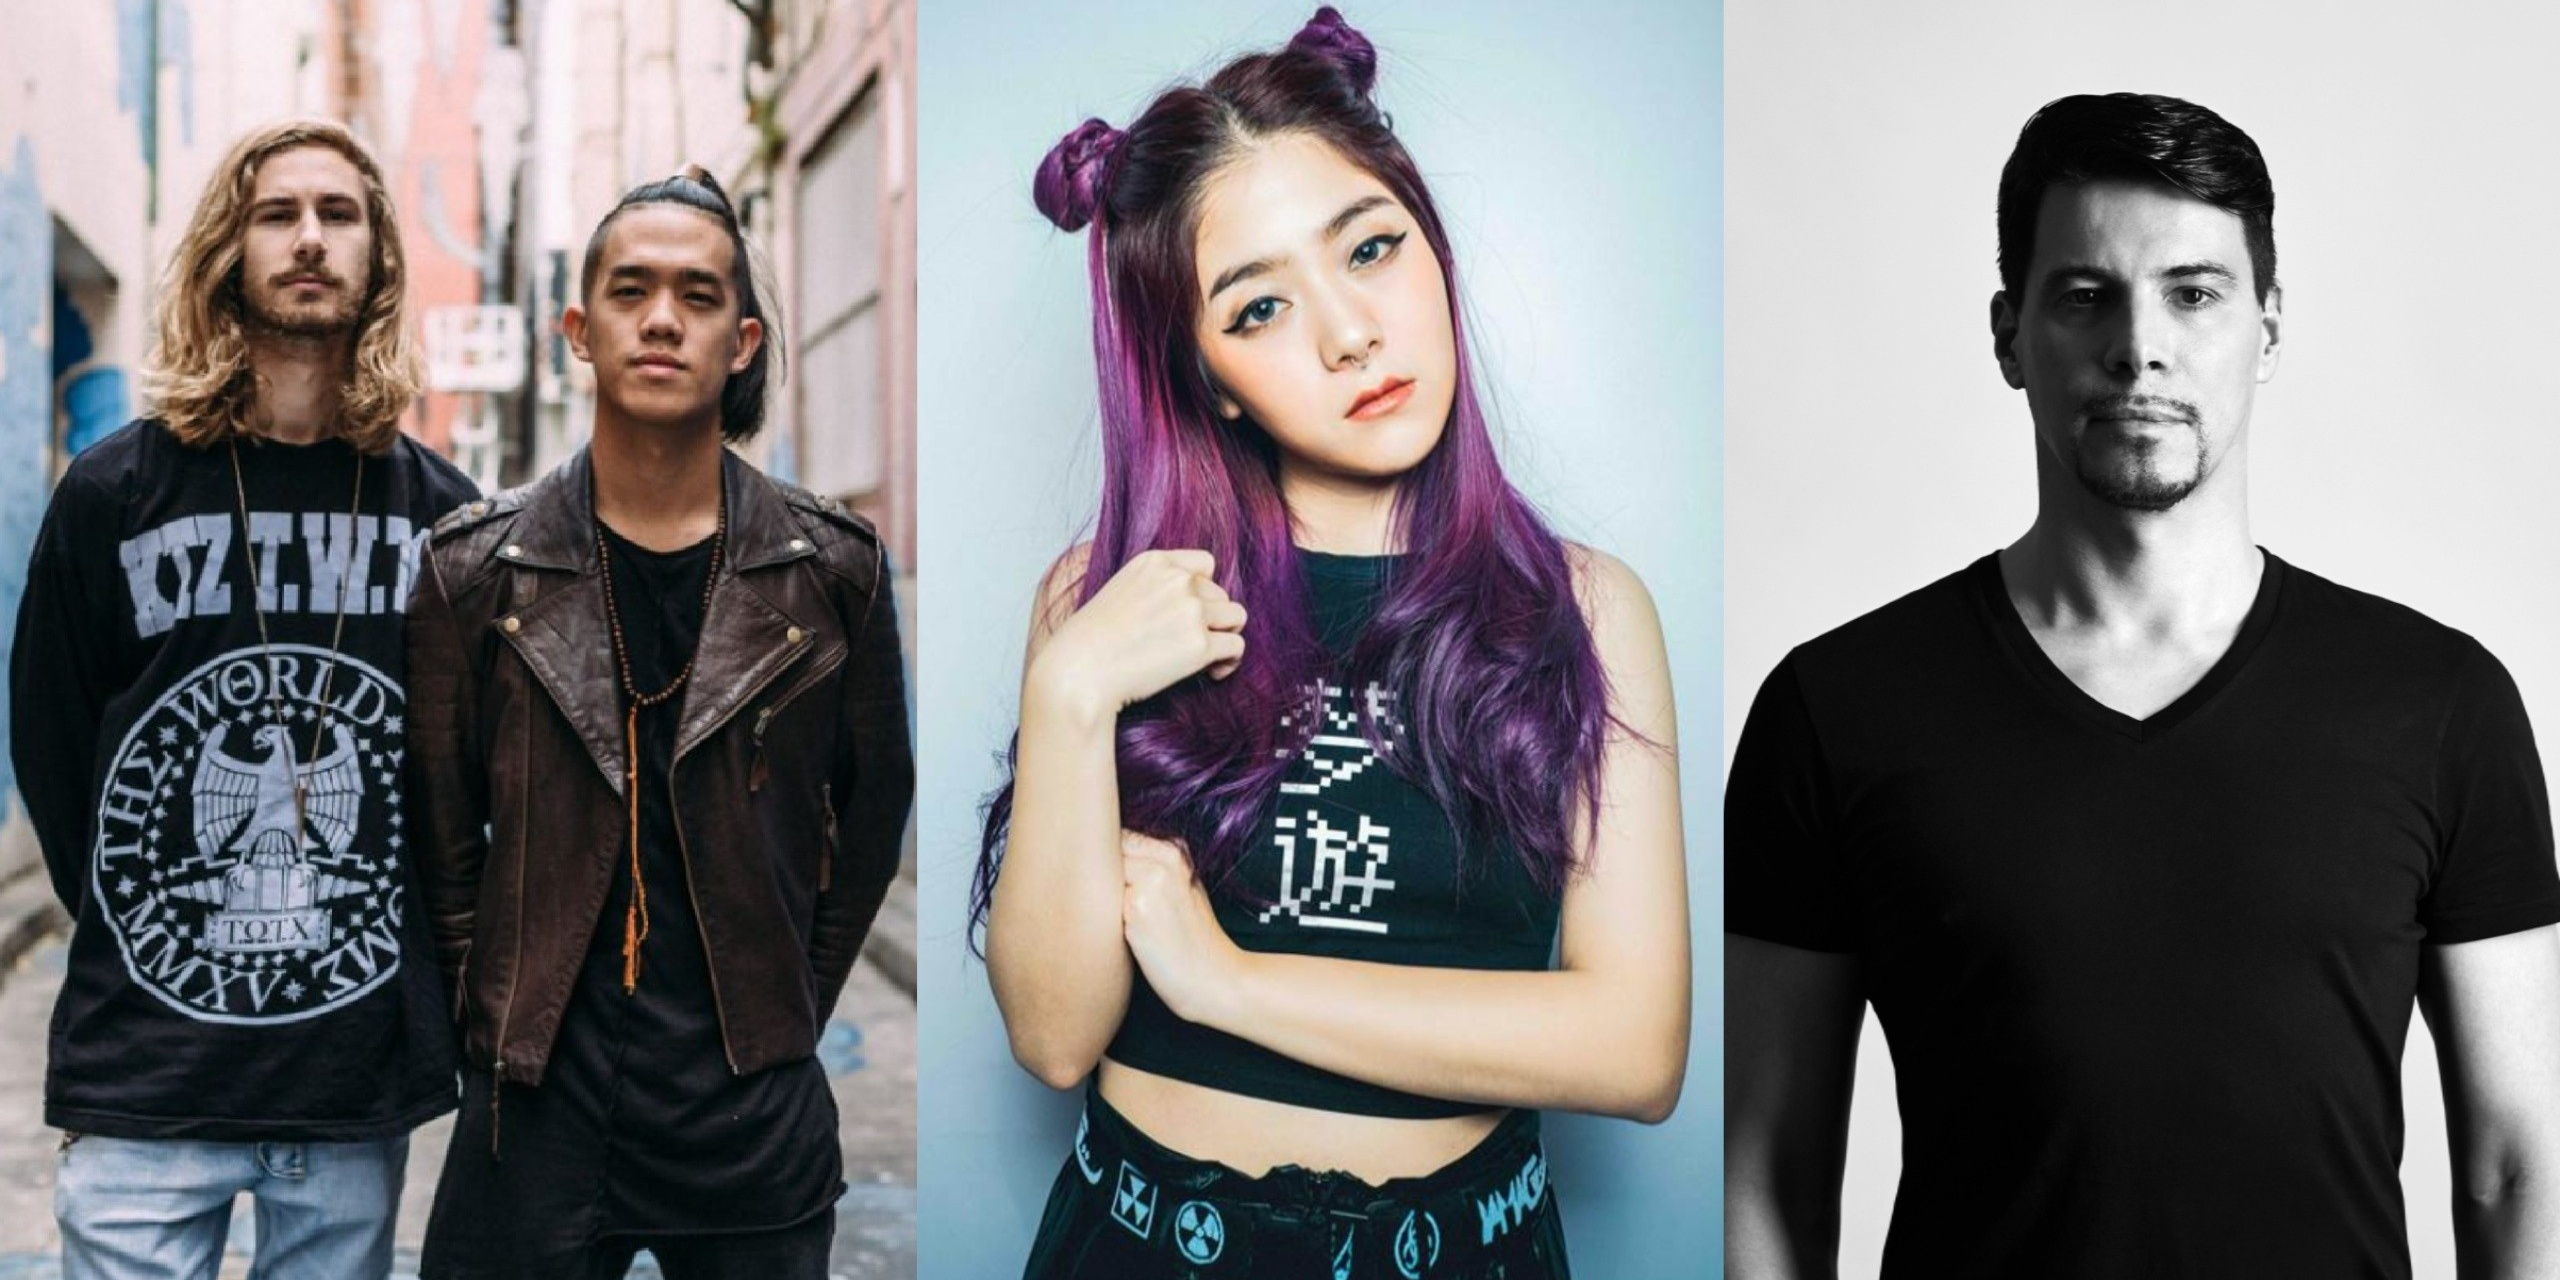 Wired Music Week to hold inaugural dance music convention this May in Kuala Lumpur